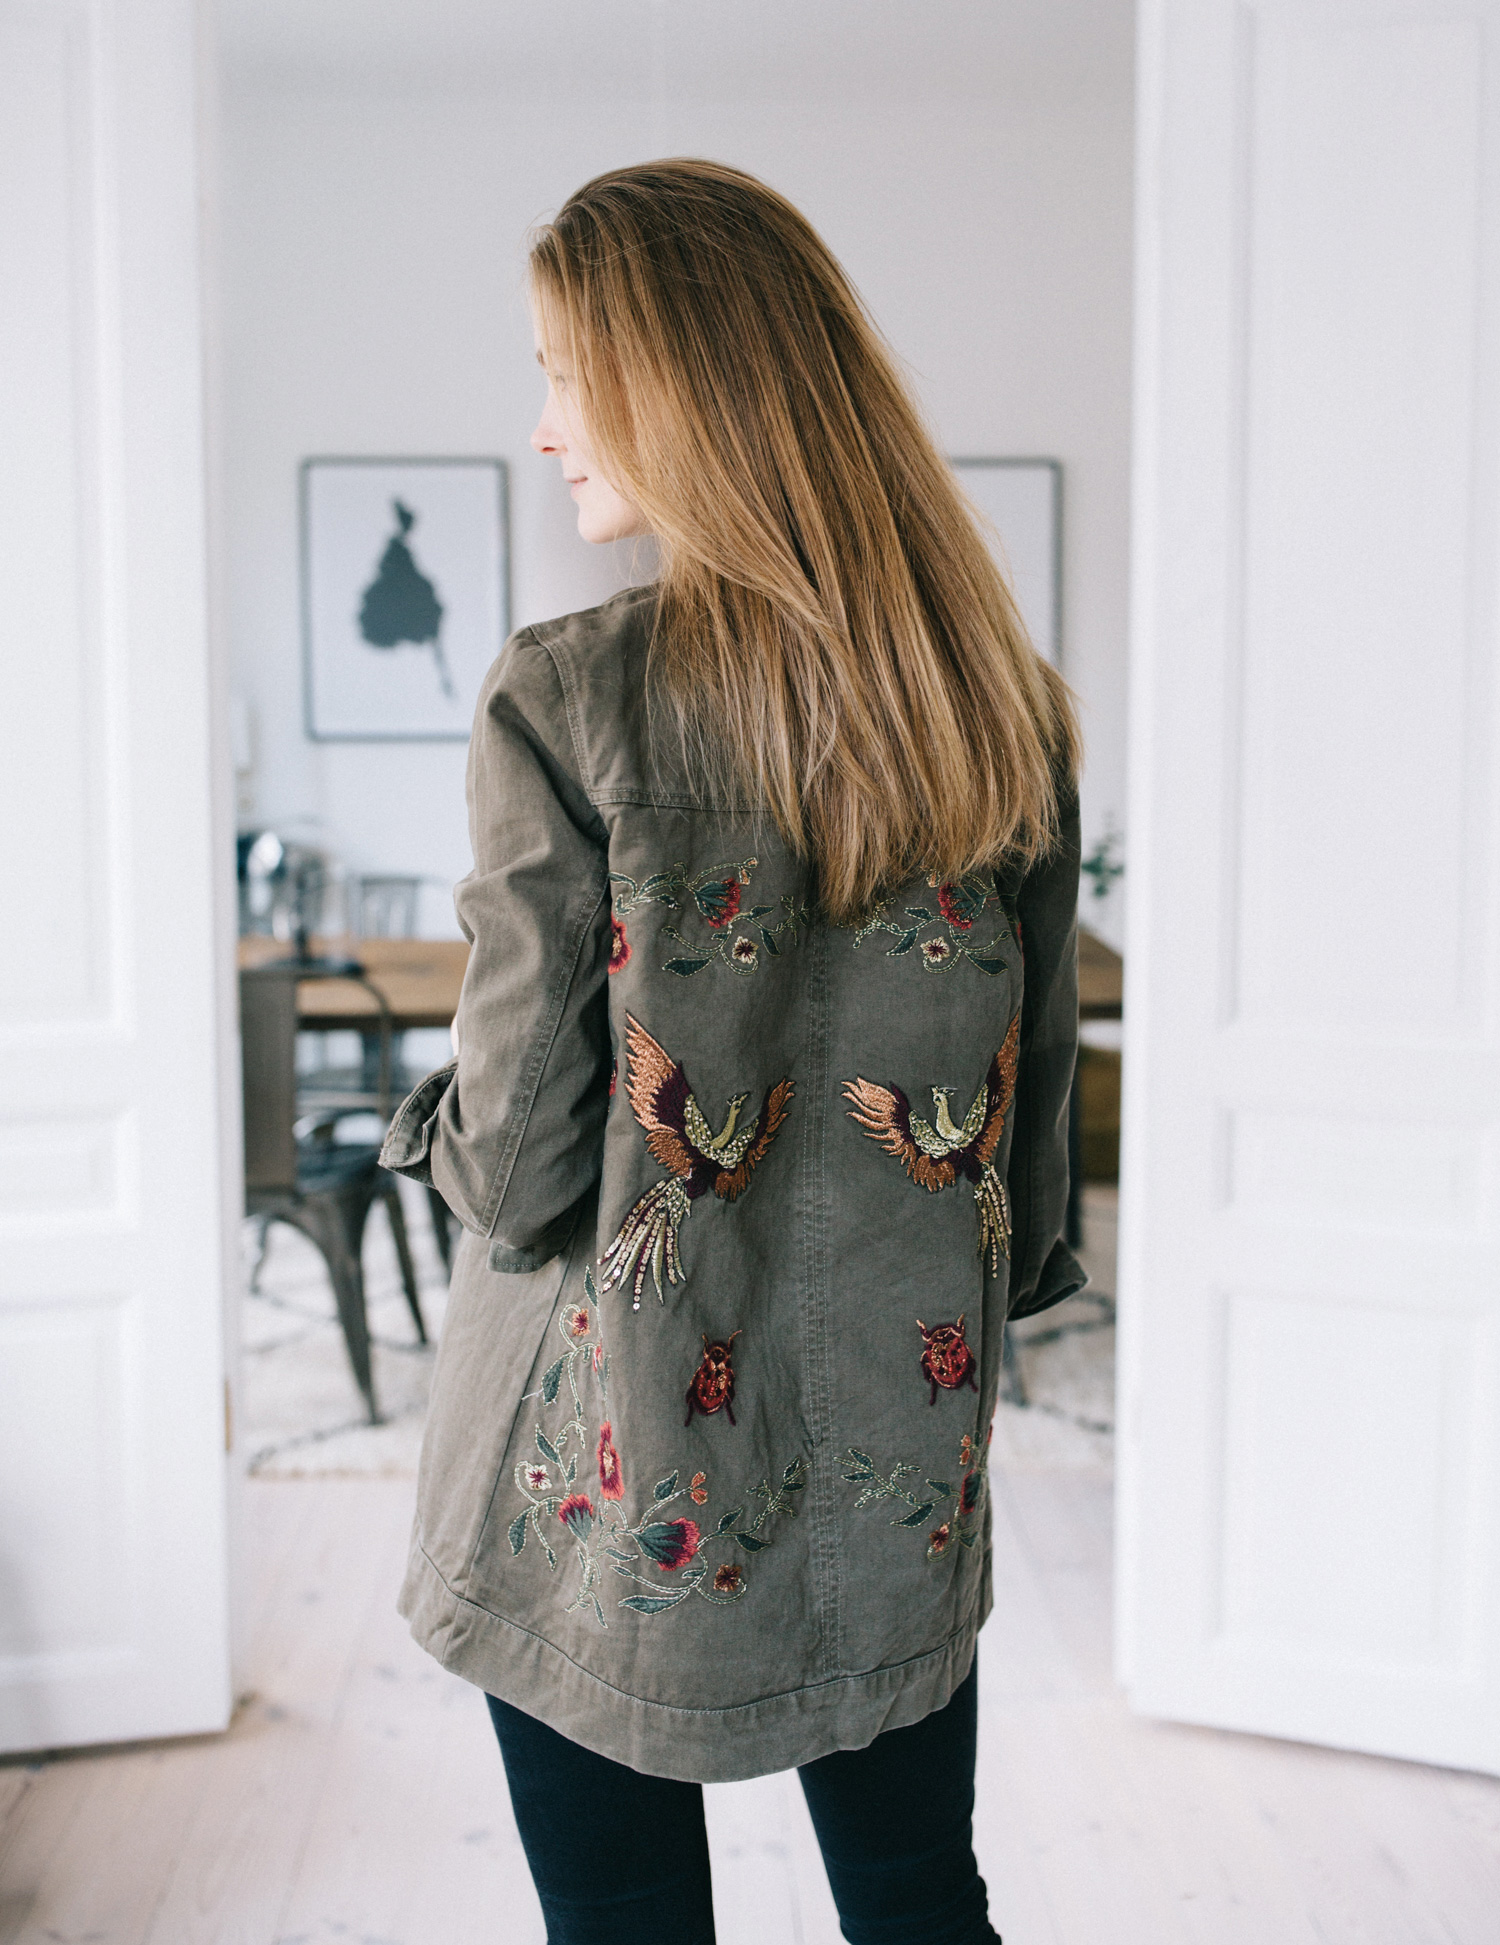 380a032ad1f Summer jackets all year round - Christina Dueholm